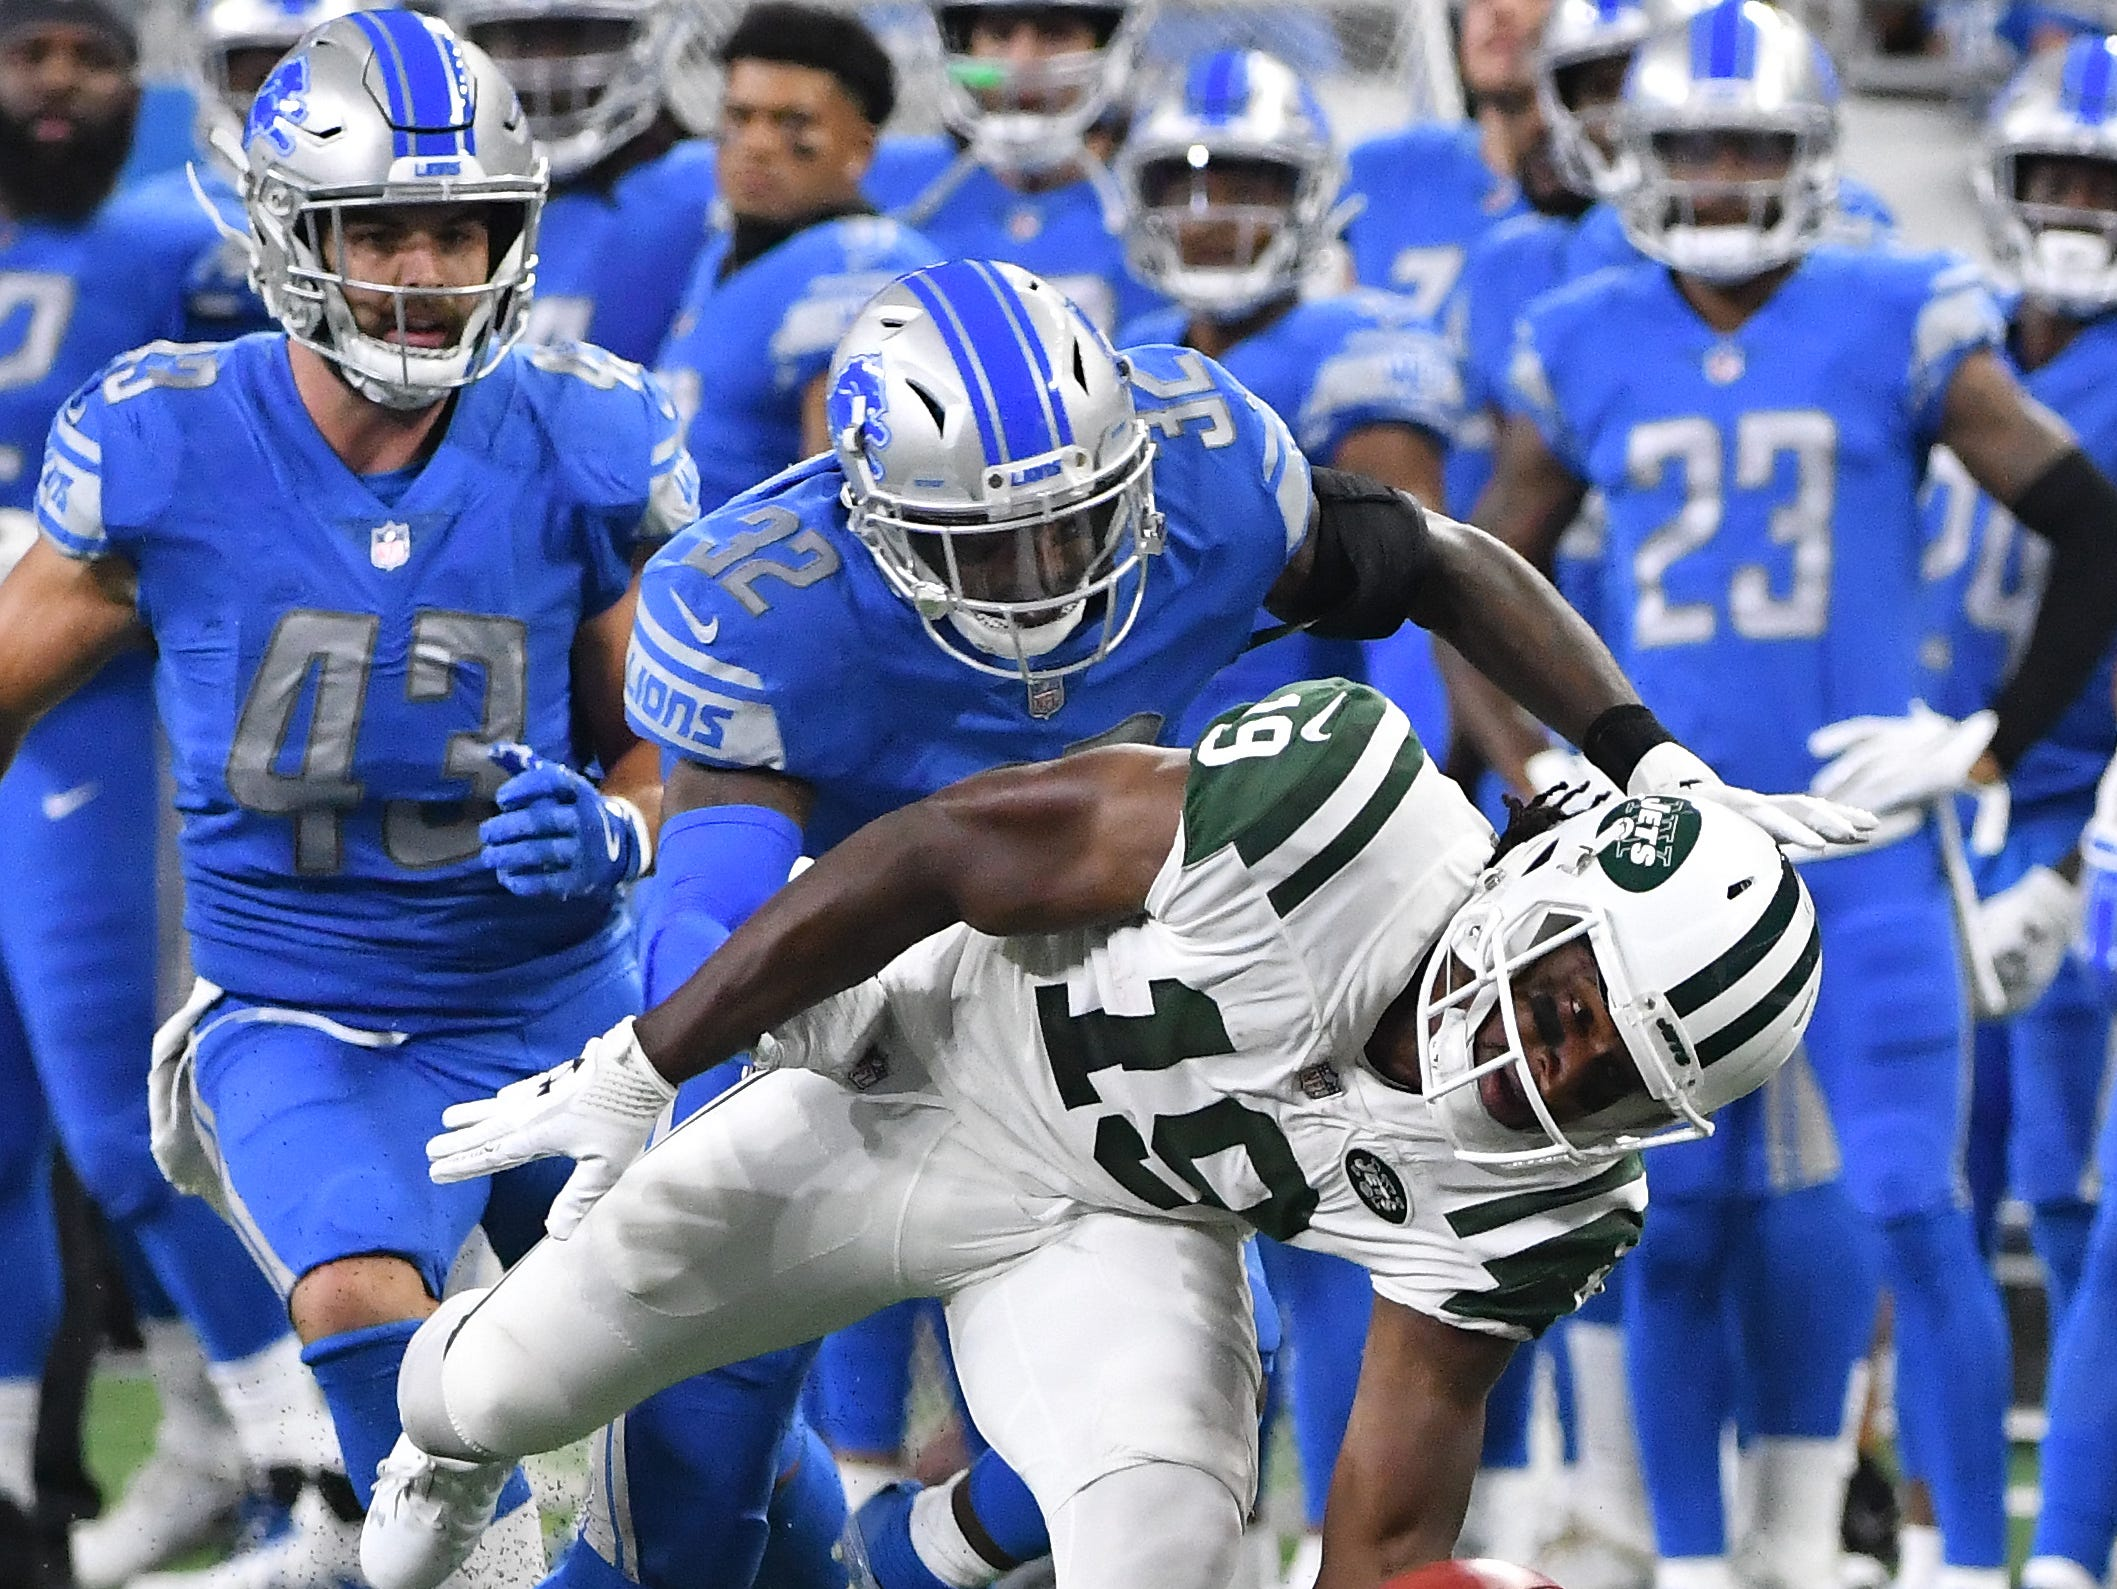 S Tavon Wilson: Wilson, like Jarrad Davis, has seemed to regress as a run defender. The in-the-box safety has previously shown a knack for attacking ball carriers downhill, but his name hasn't been called as much this season, in large part because his role has been significantly reduced. He's been on the field more than 50 percent of the defensive snaps in just two of Detroit's seven games he's played. Grade: D